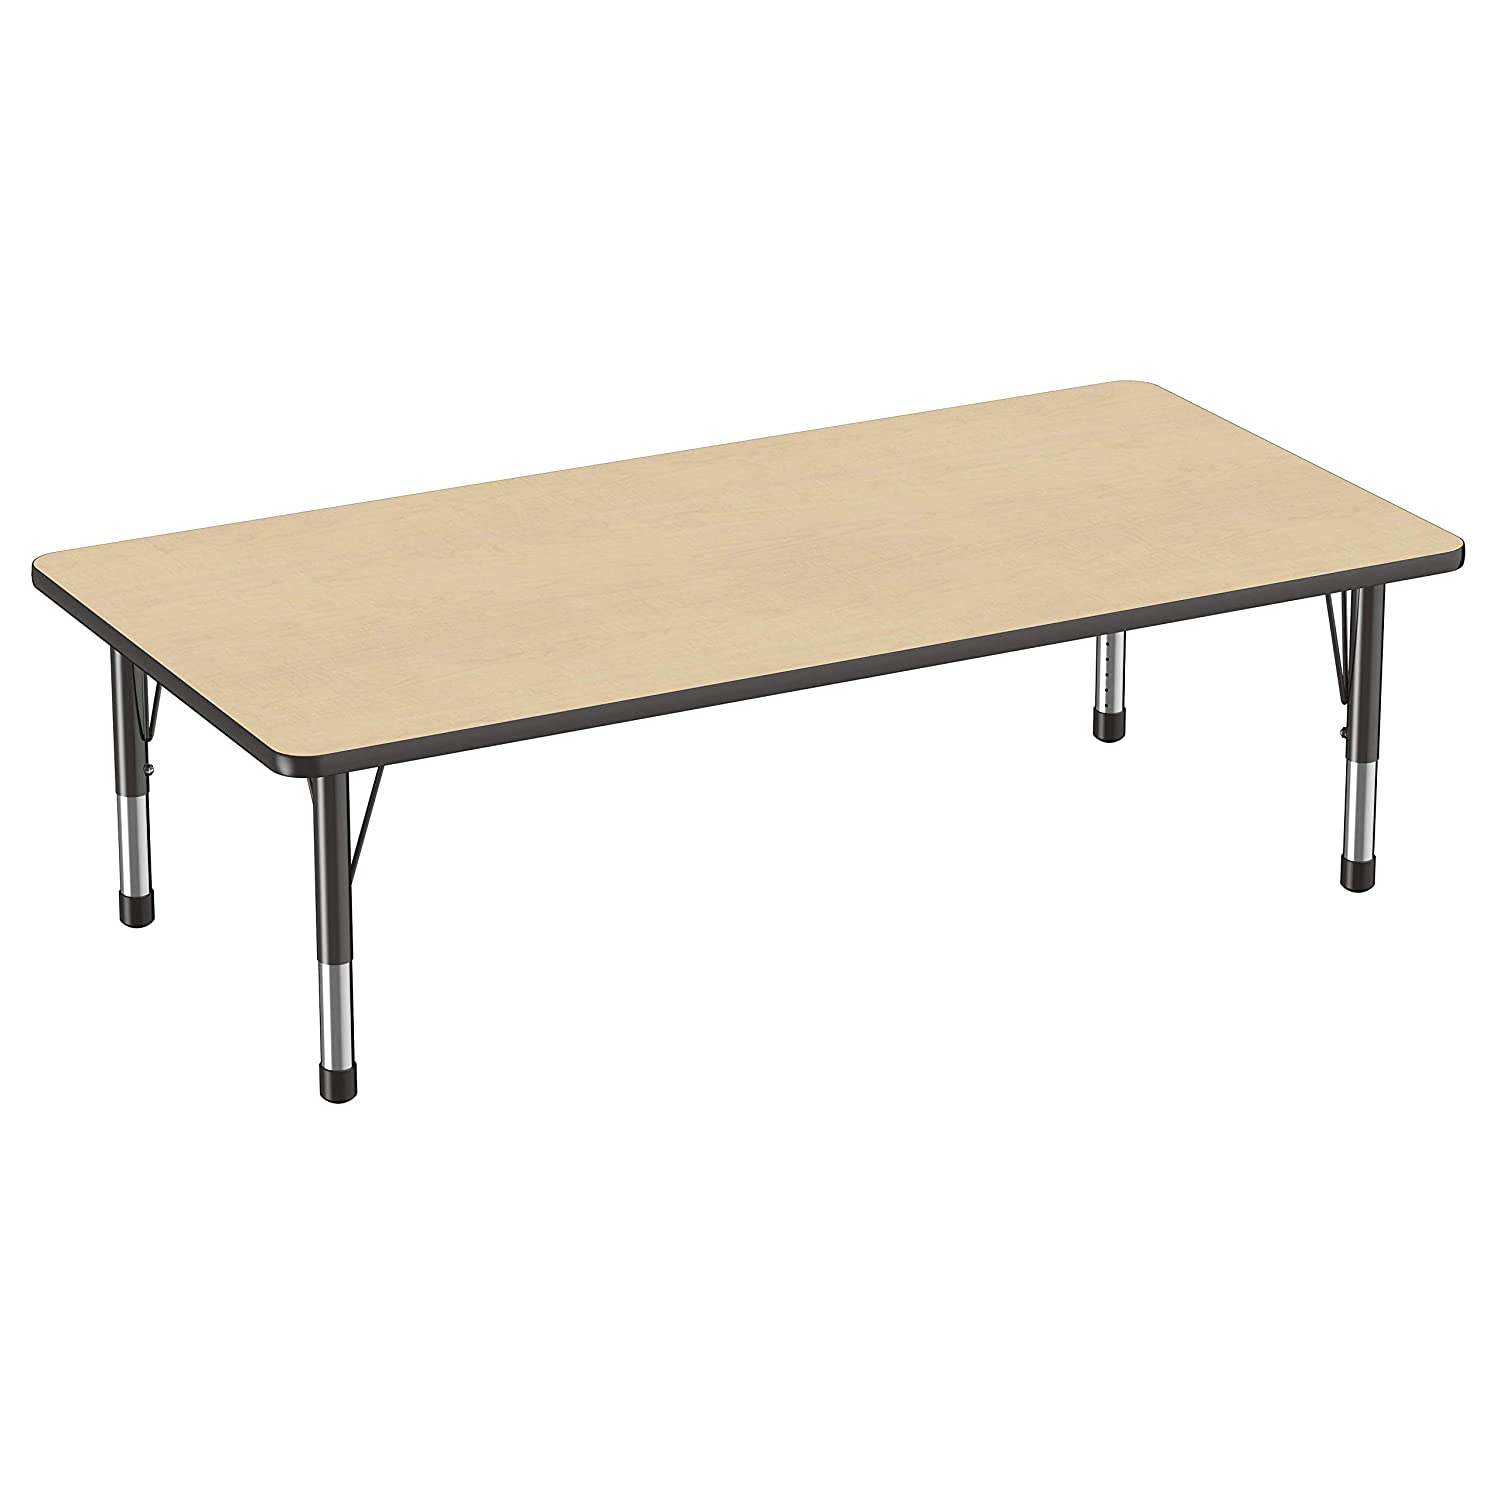 Toddler Legs Adjustable Height 15-24 inches 36 x 72 inch Maple Top and Black Edge FDP Rectangle Activity School and Classroom Kids Table